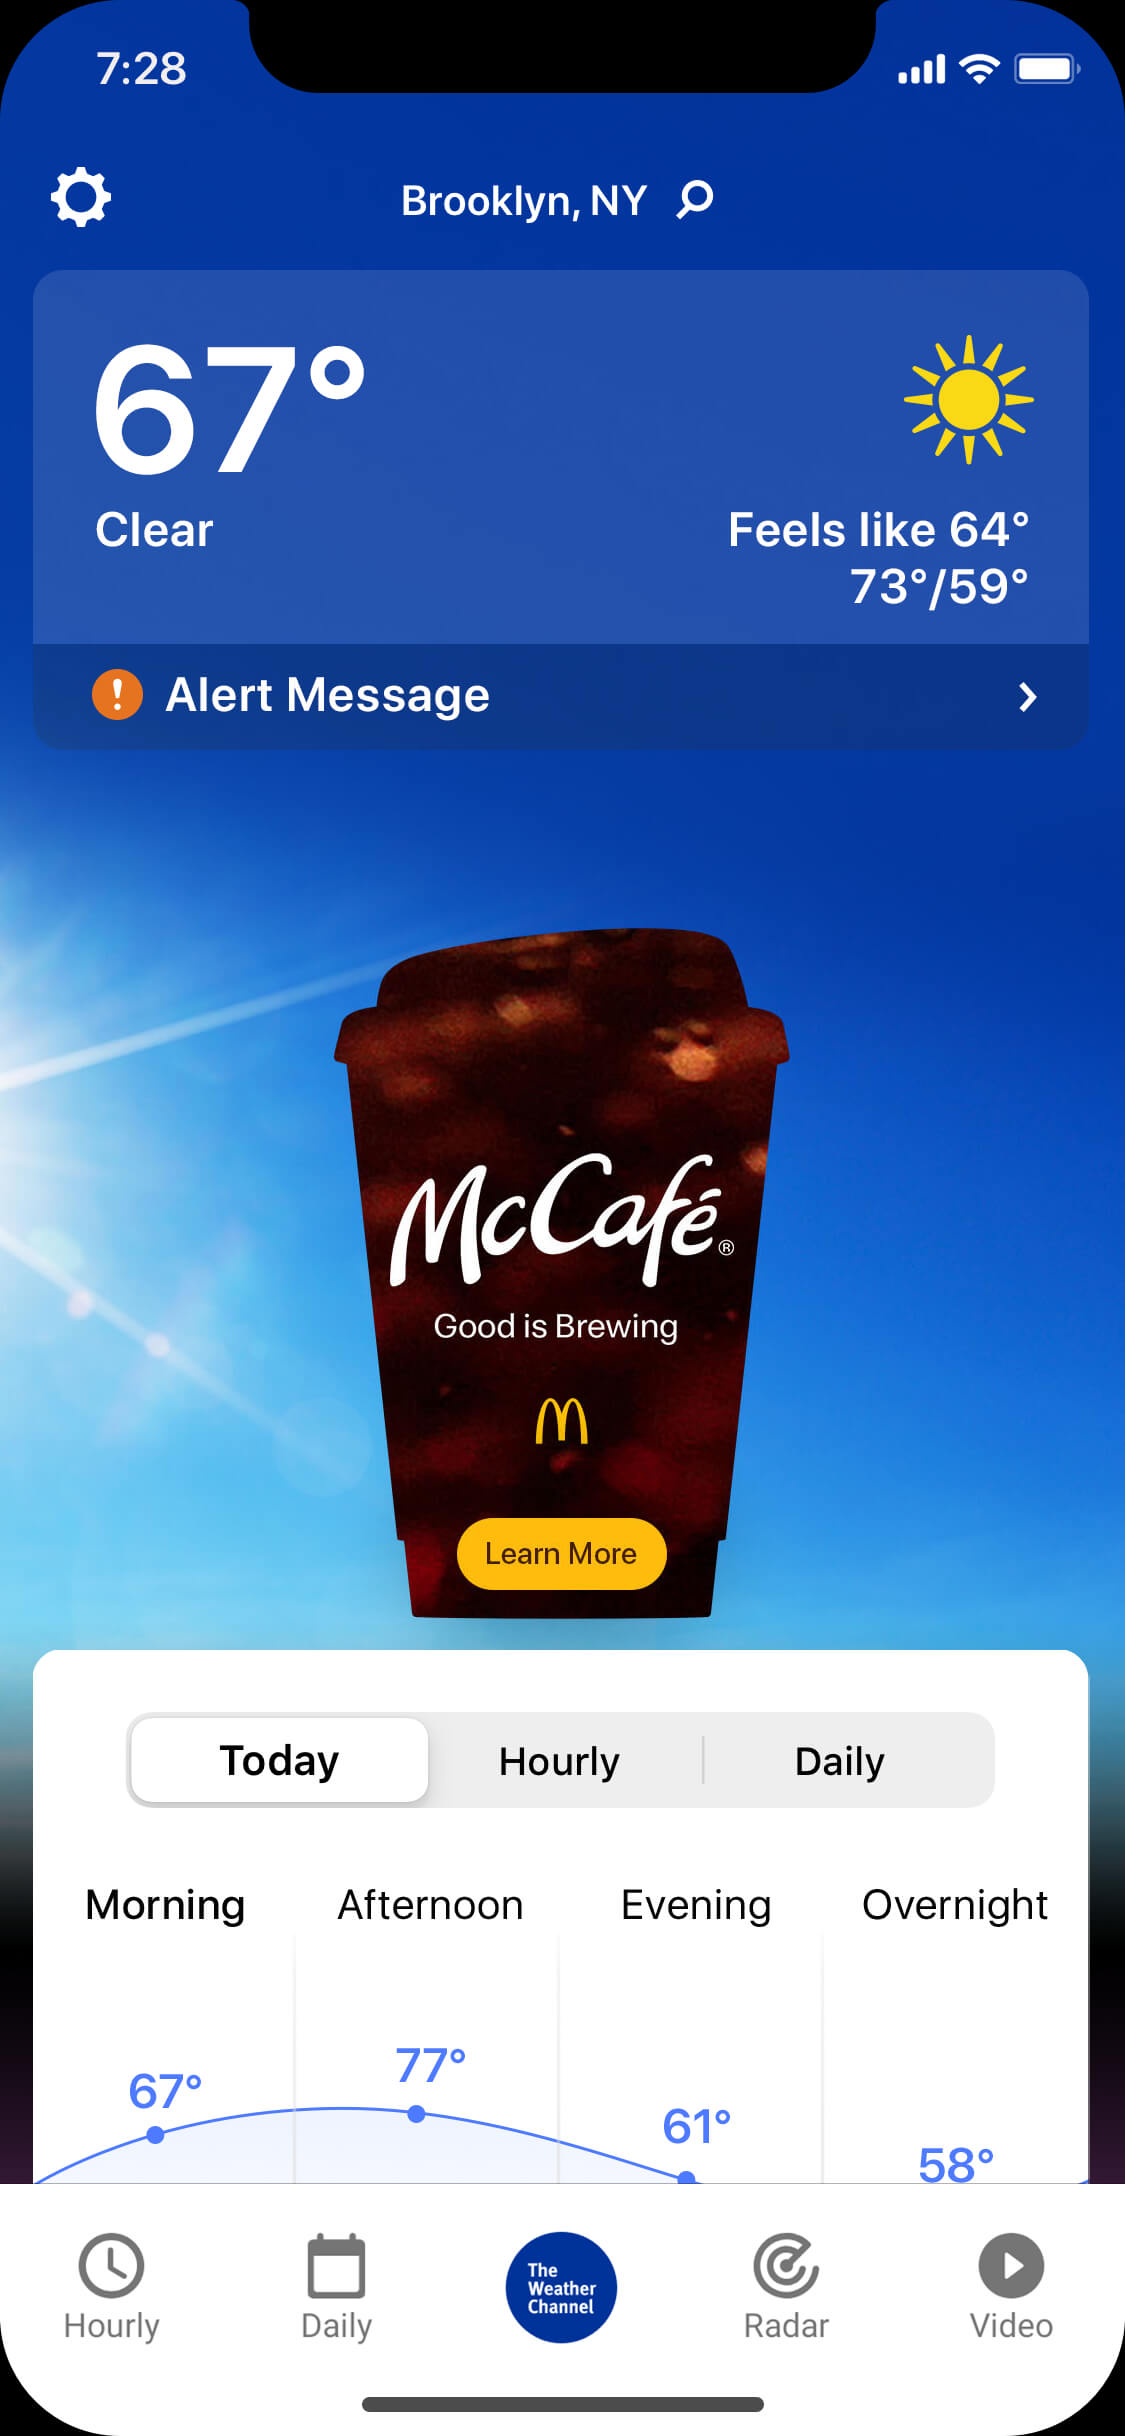 McCafe_clear_day